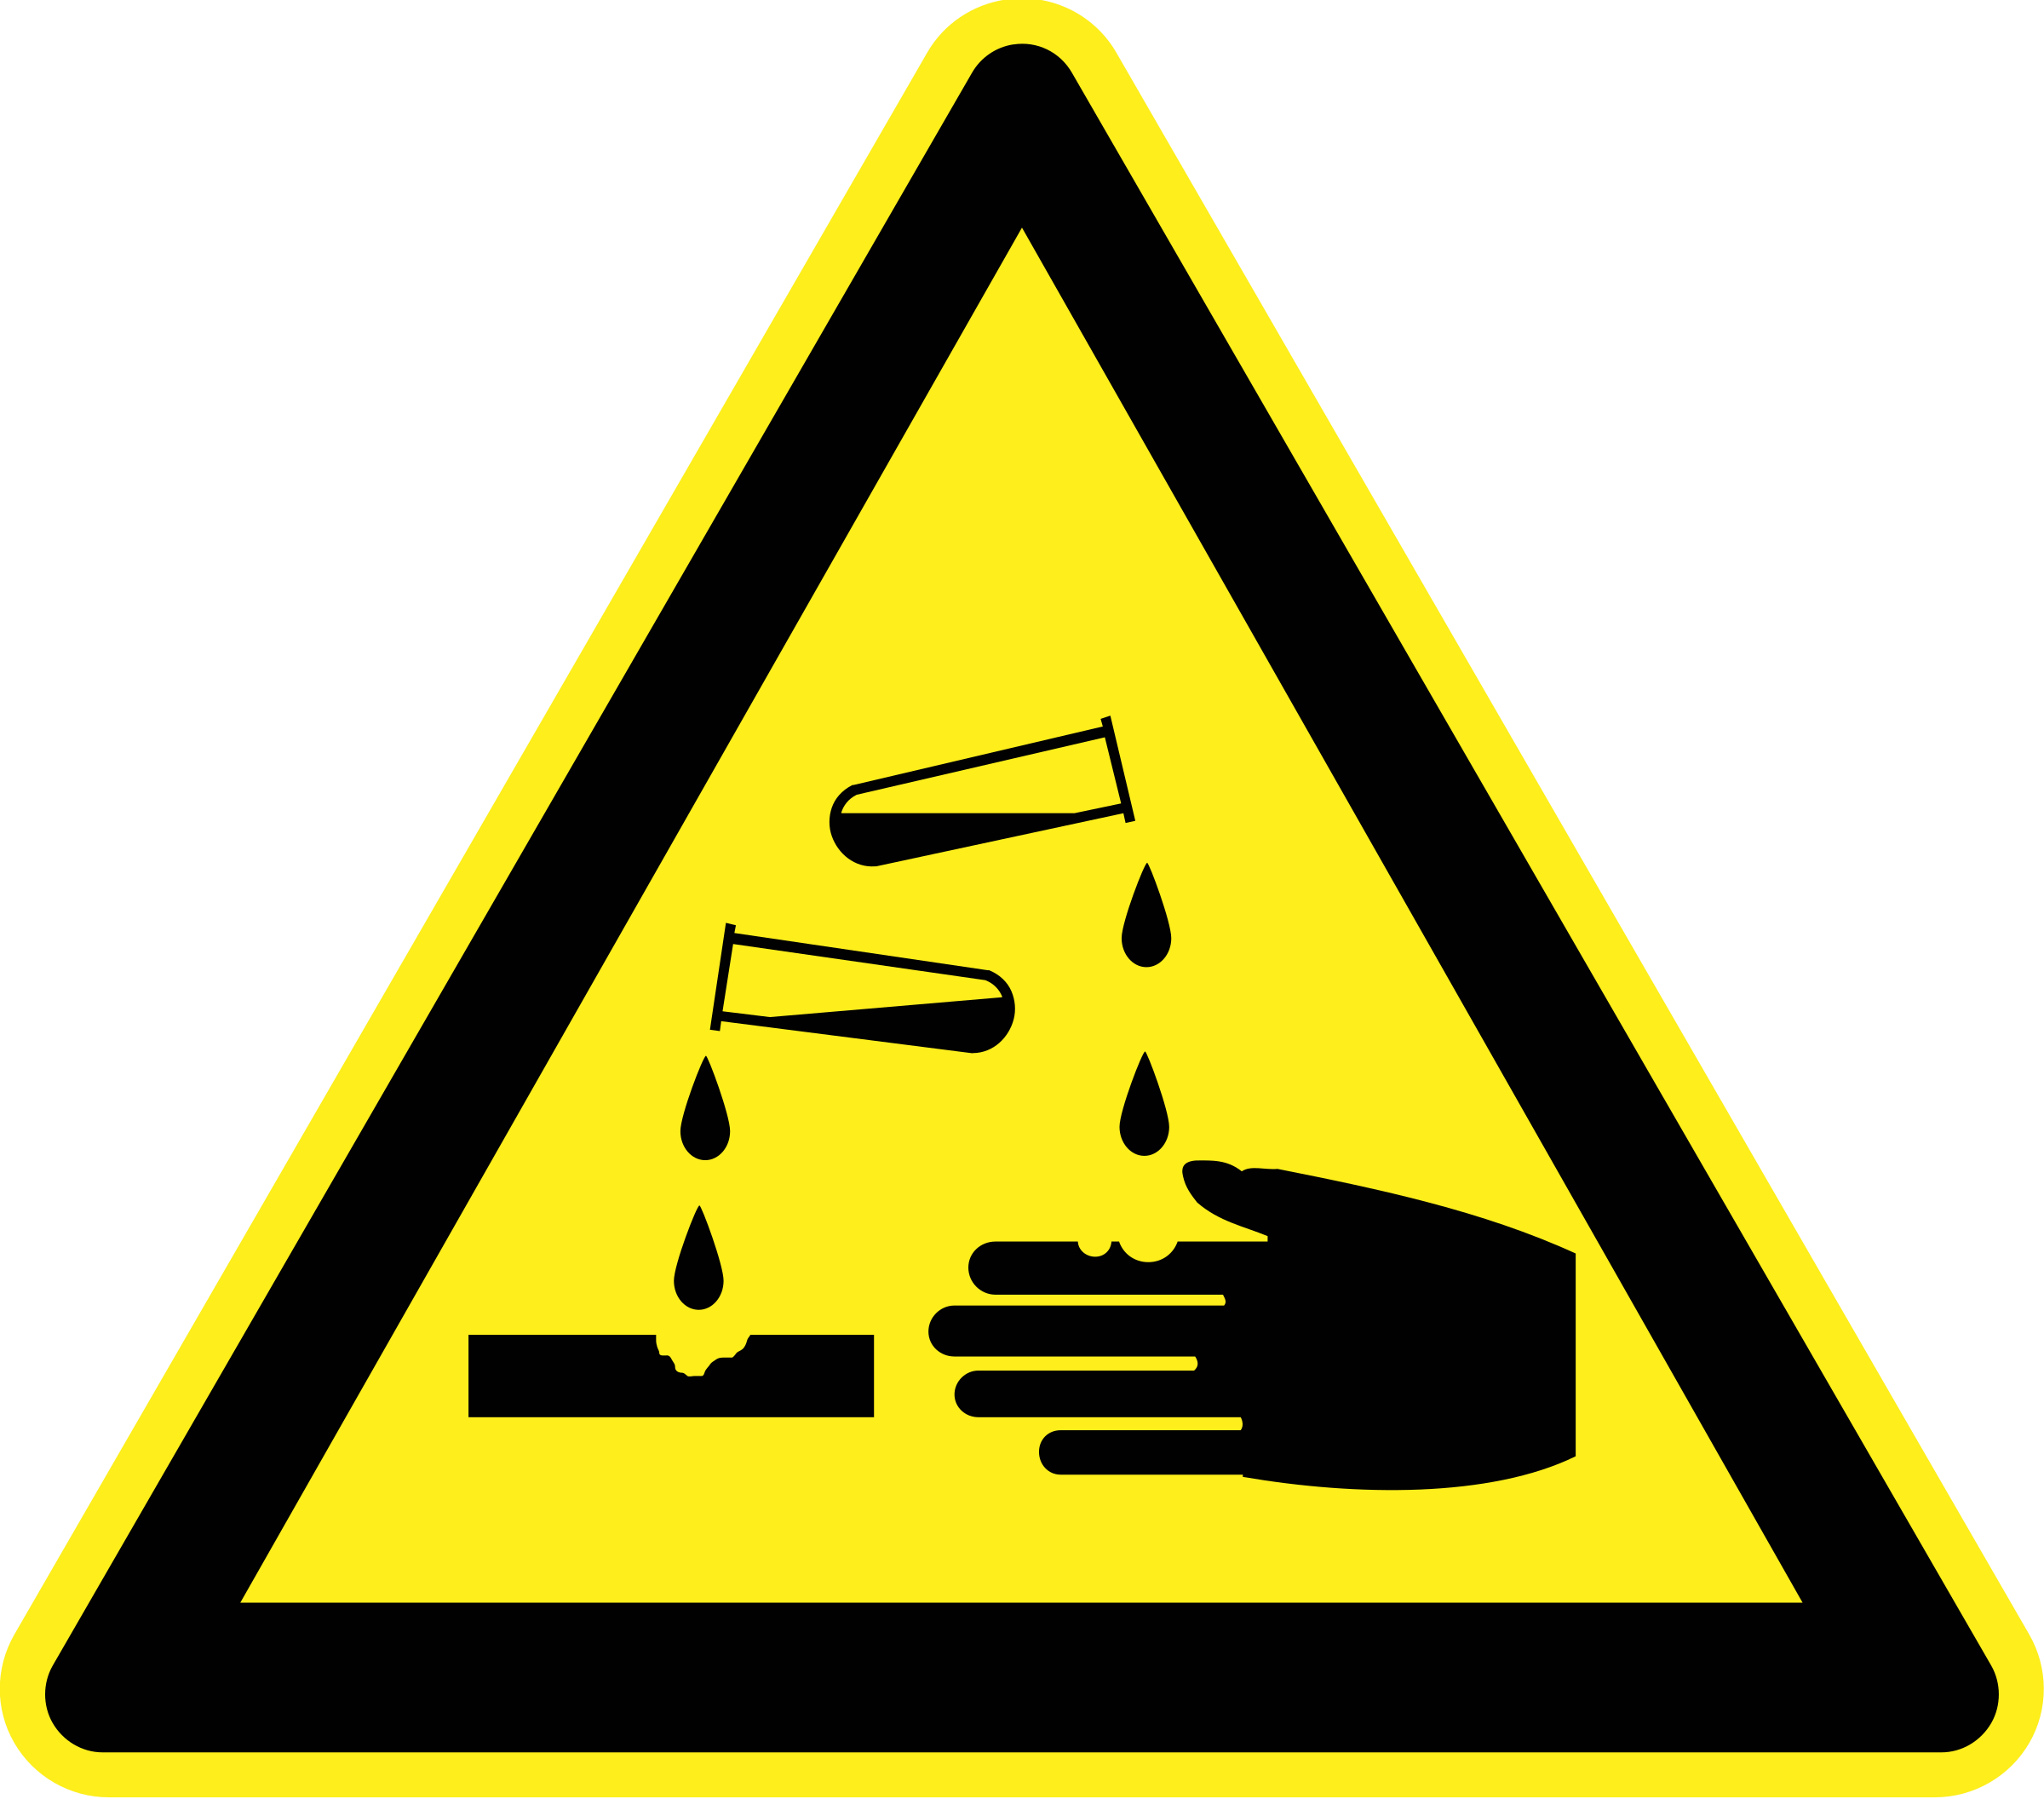 Corrosive Material Warning Sign by h0us3s